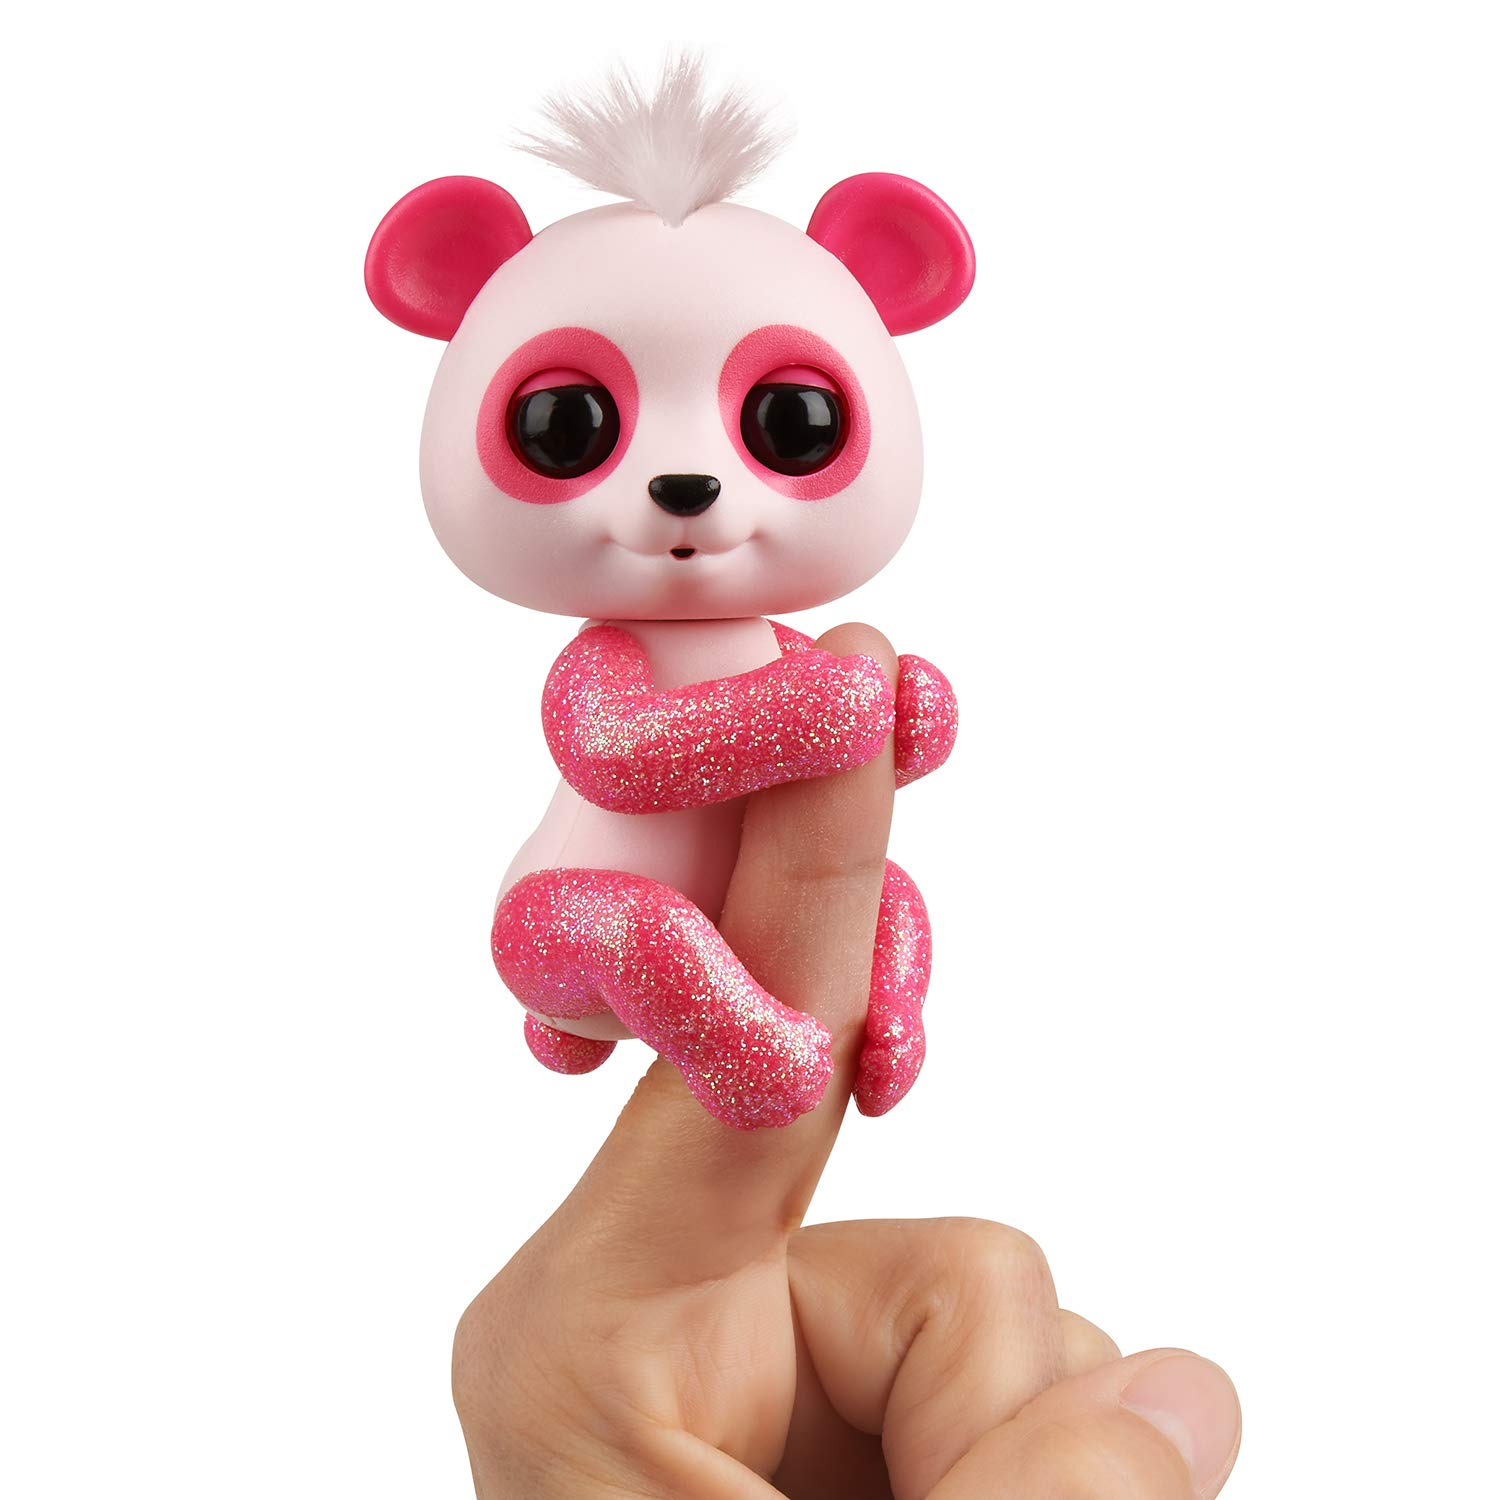 WowWee Fingerlings Glitter Panda - Polly - Interactive Collectible Baby Pet, Pink